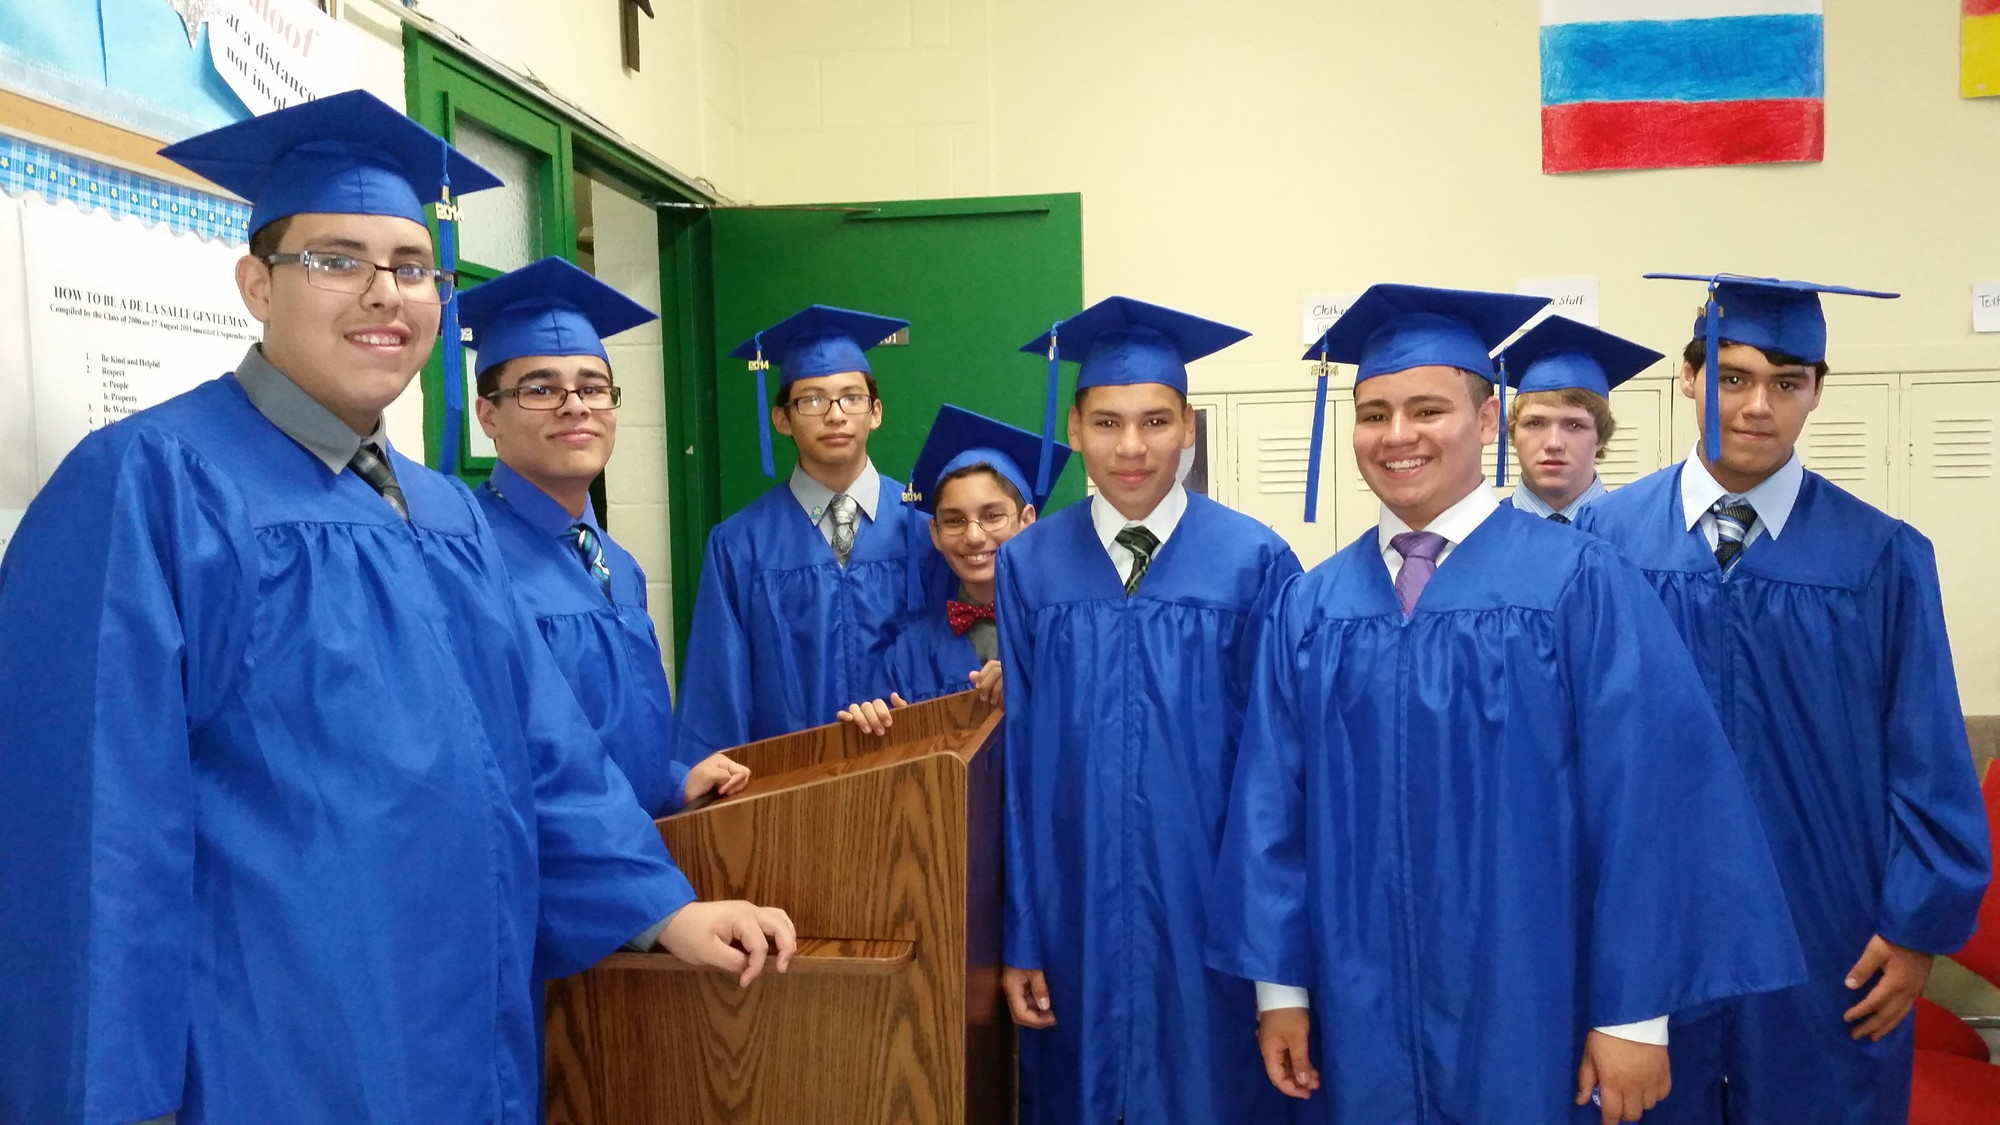 DE LA SALLE 2014 GRADUATES: Some of the graduates in the classroom before the ceremony on June 13. Fourteen young men graduated from the De La Salle Academy in Our Holy Redeemer Church in Freeport this year. From left are Jordy Duron, James Curry, Jason Gutierrez, Carlos Cabrera, Jerson Gonzalez, Jason Arbarca, Andre Nilov, and Steven Ortega.